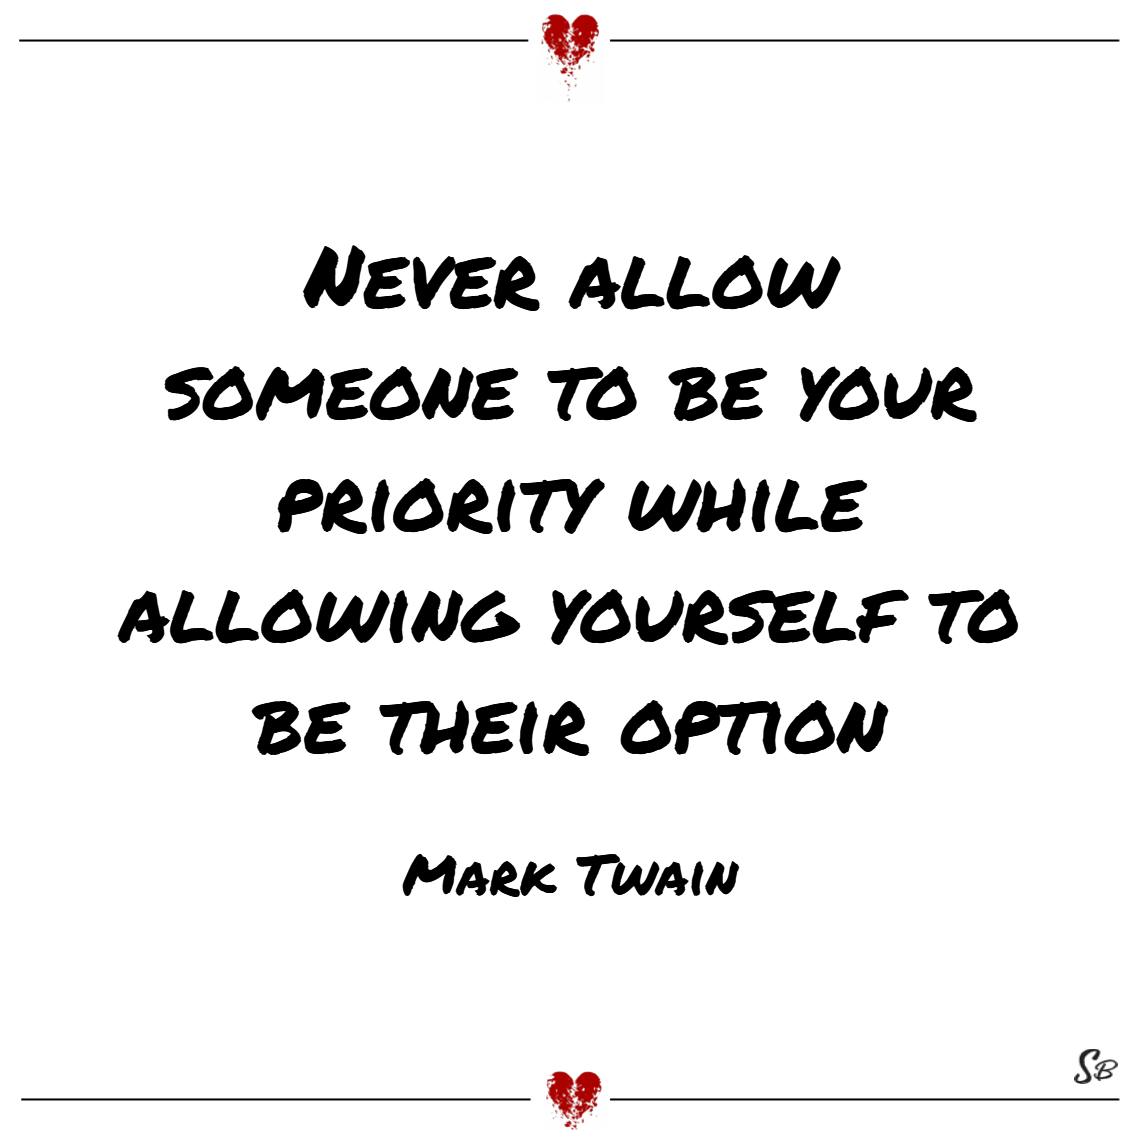 Never allow someone to be your priority while allowing yourself to be their option. – mark twain